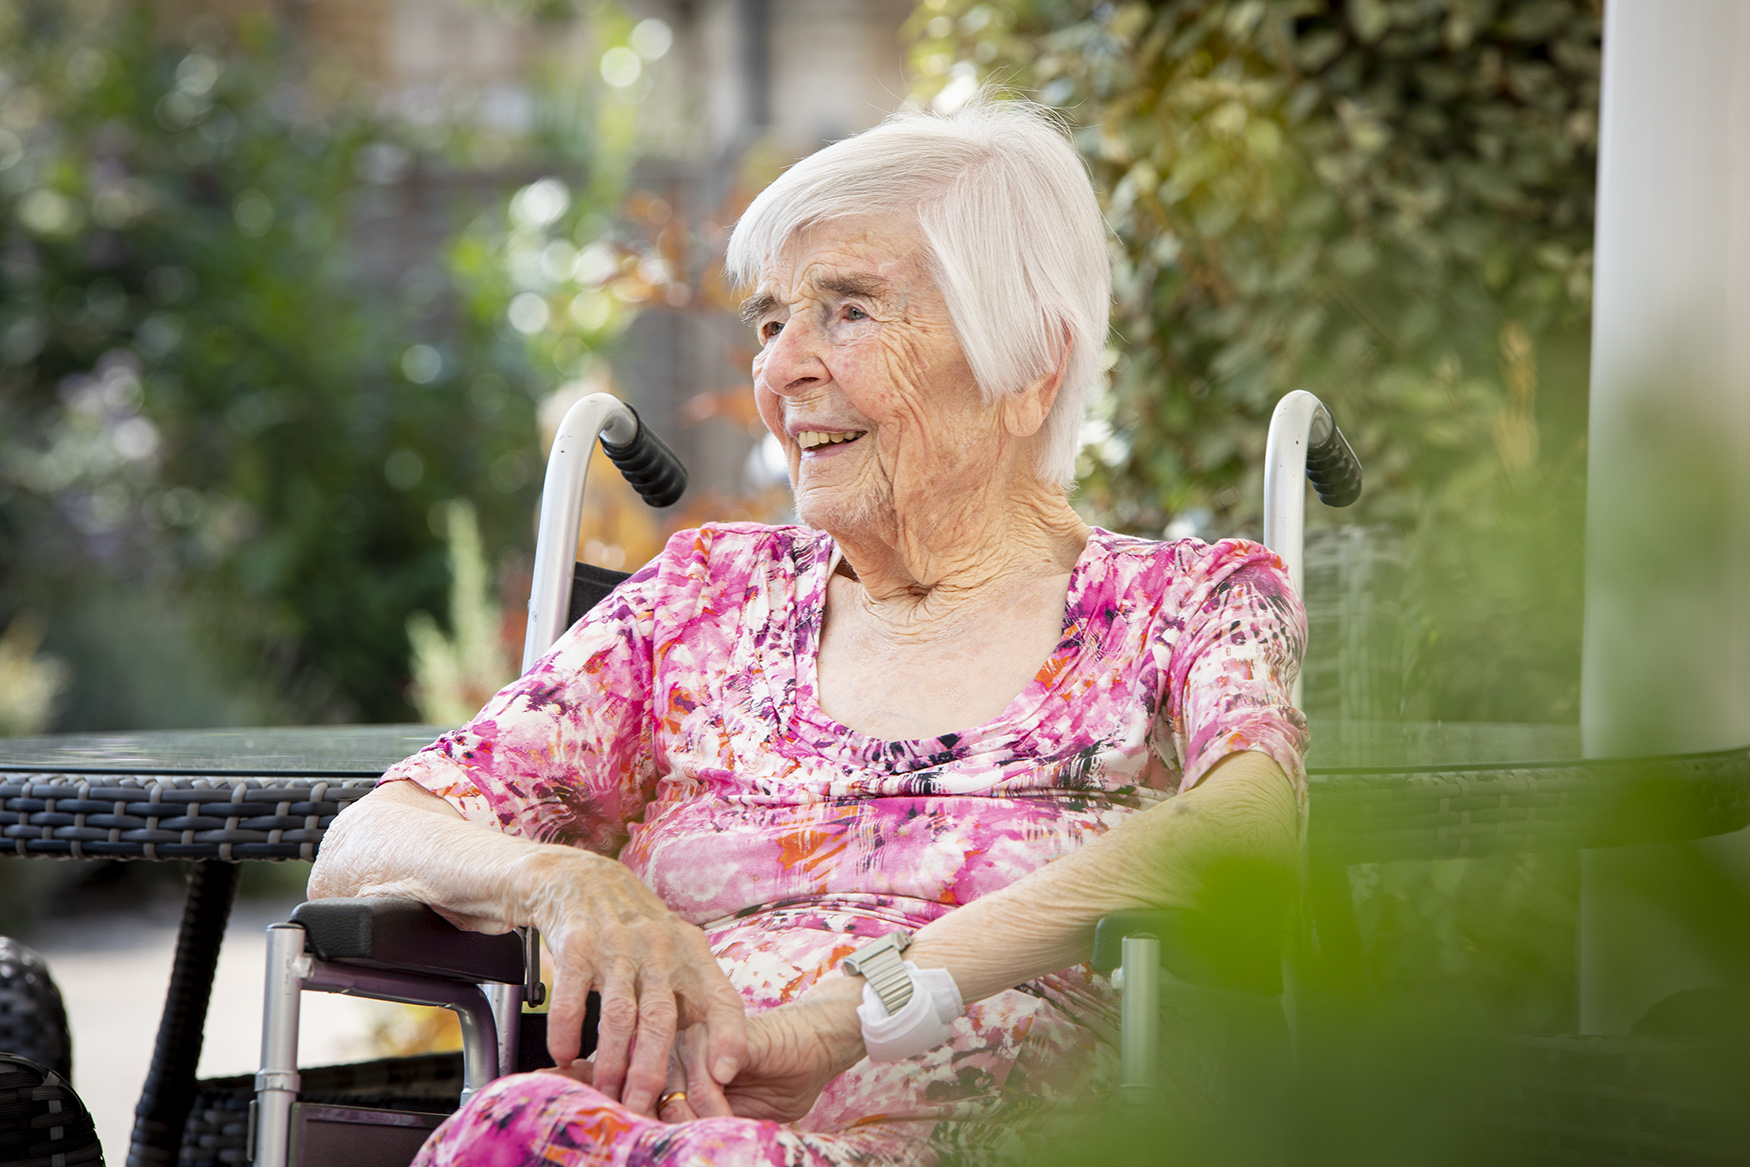 London_Portrait_Photographer_Editorial_Hallmark_Carehome_Magazine_Eileen_Webster_0002.jpg